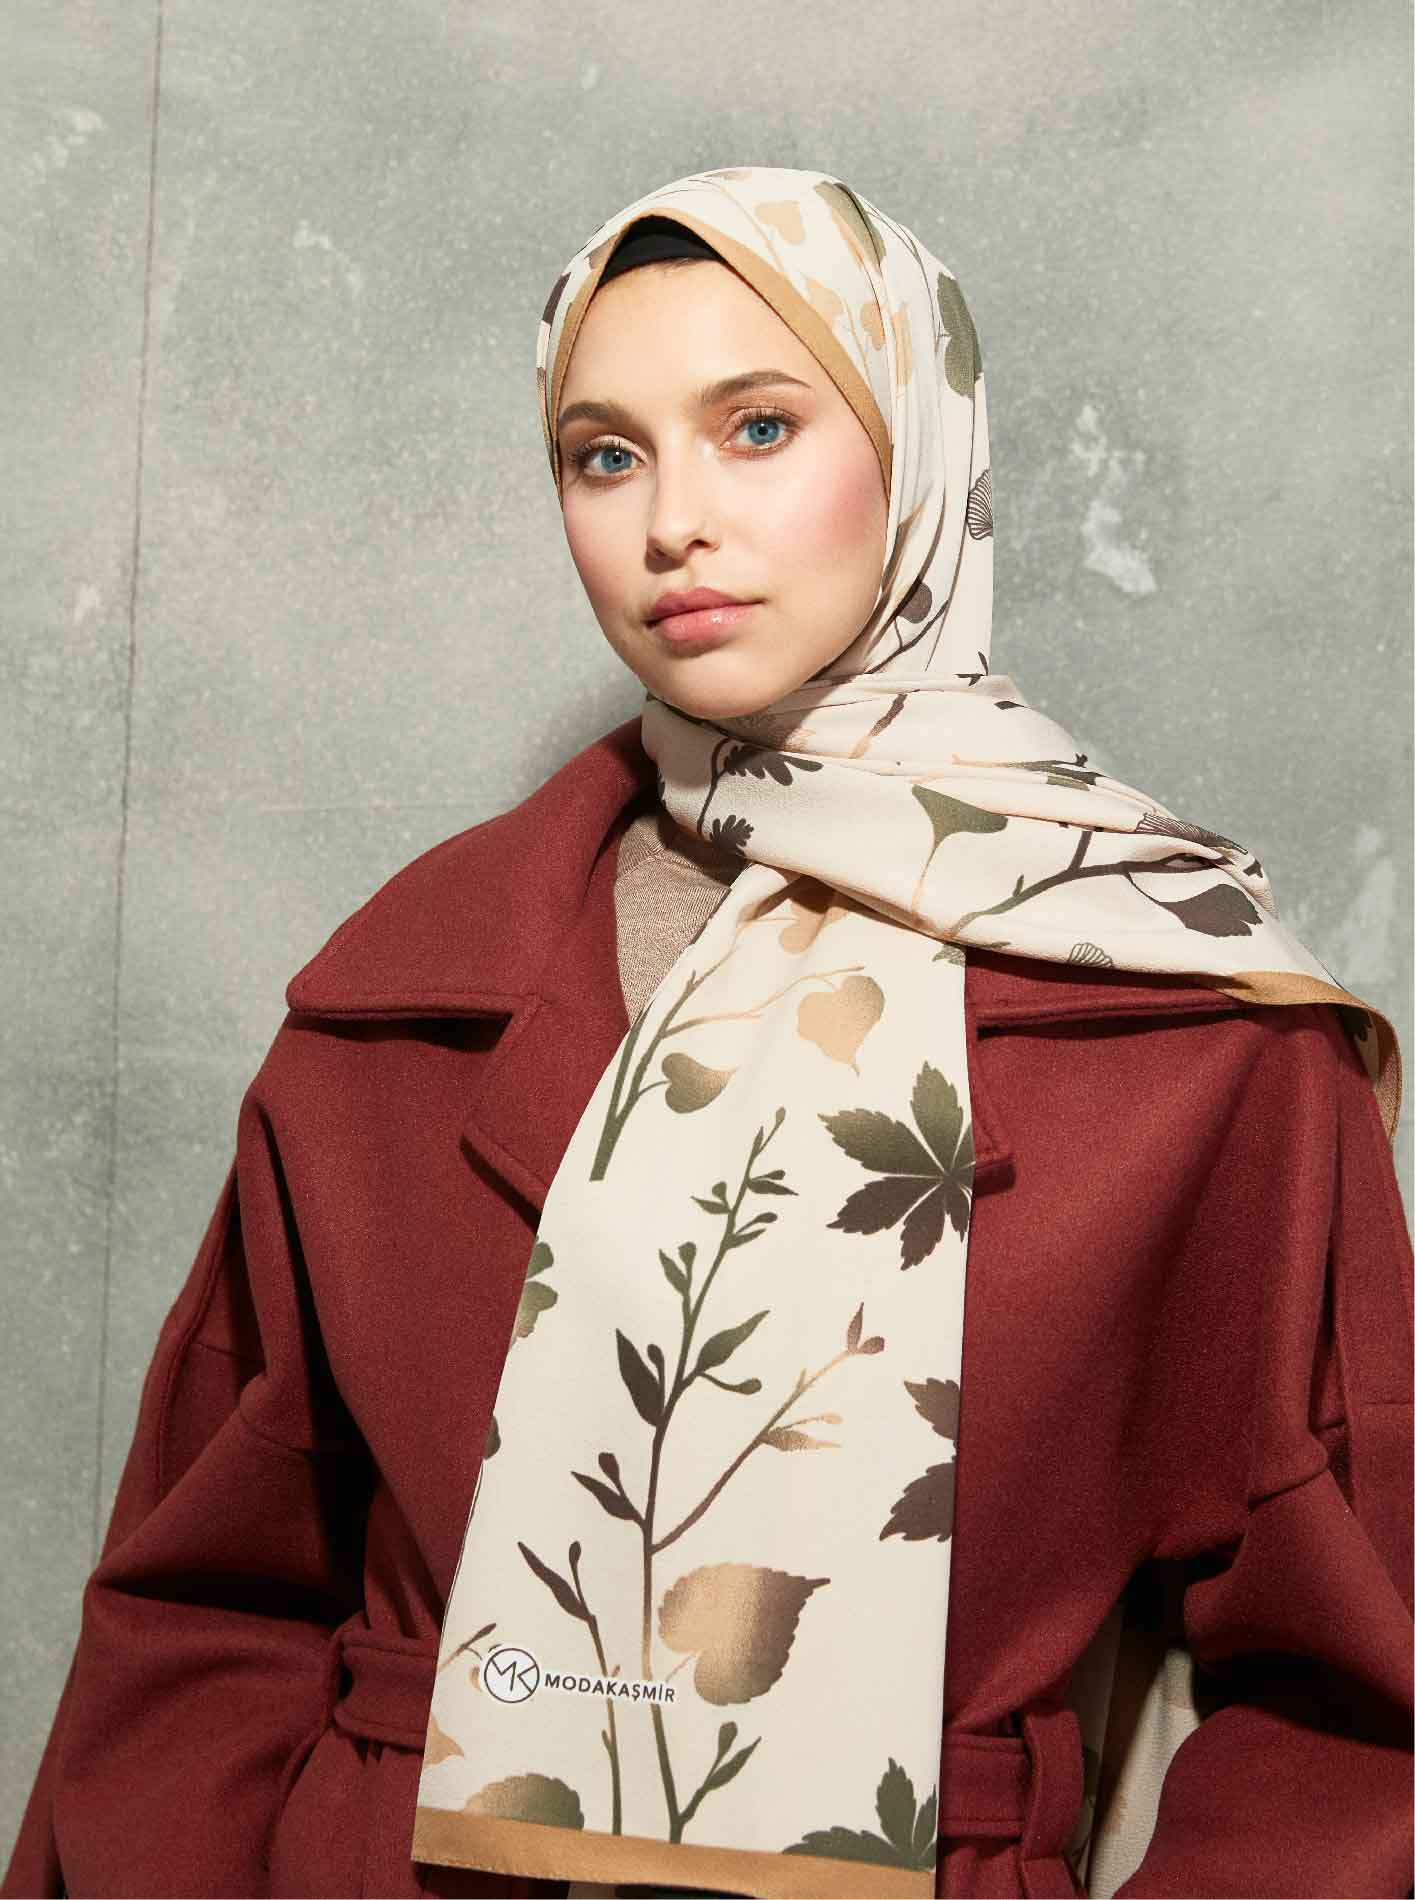 Flora Serisi Autumn Branches Patterned Shawl Mink